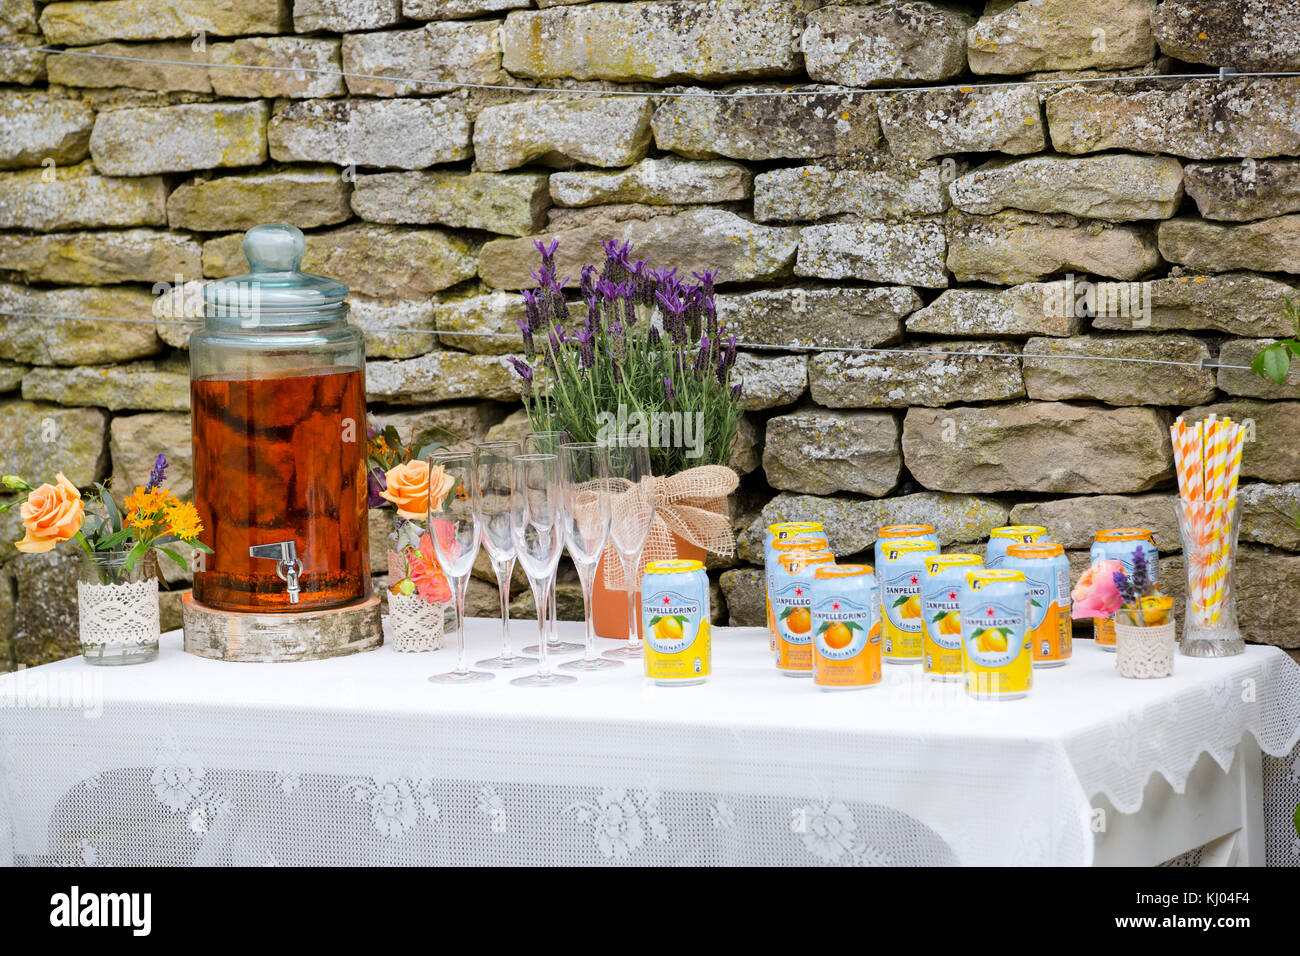 Traditional Wedding Reception Table With Tea Urn Champagne Flutes